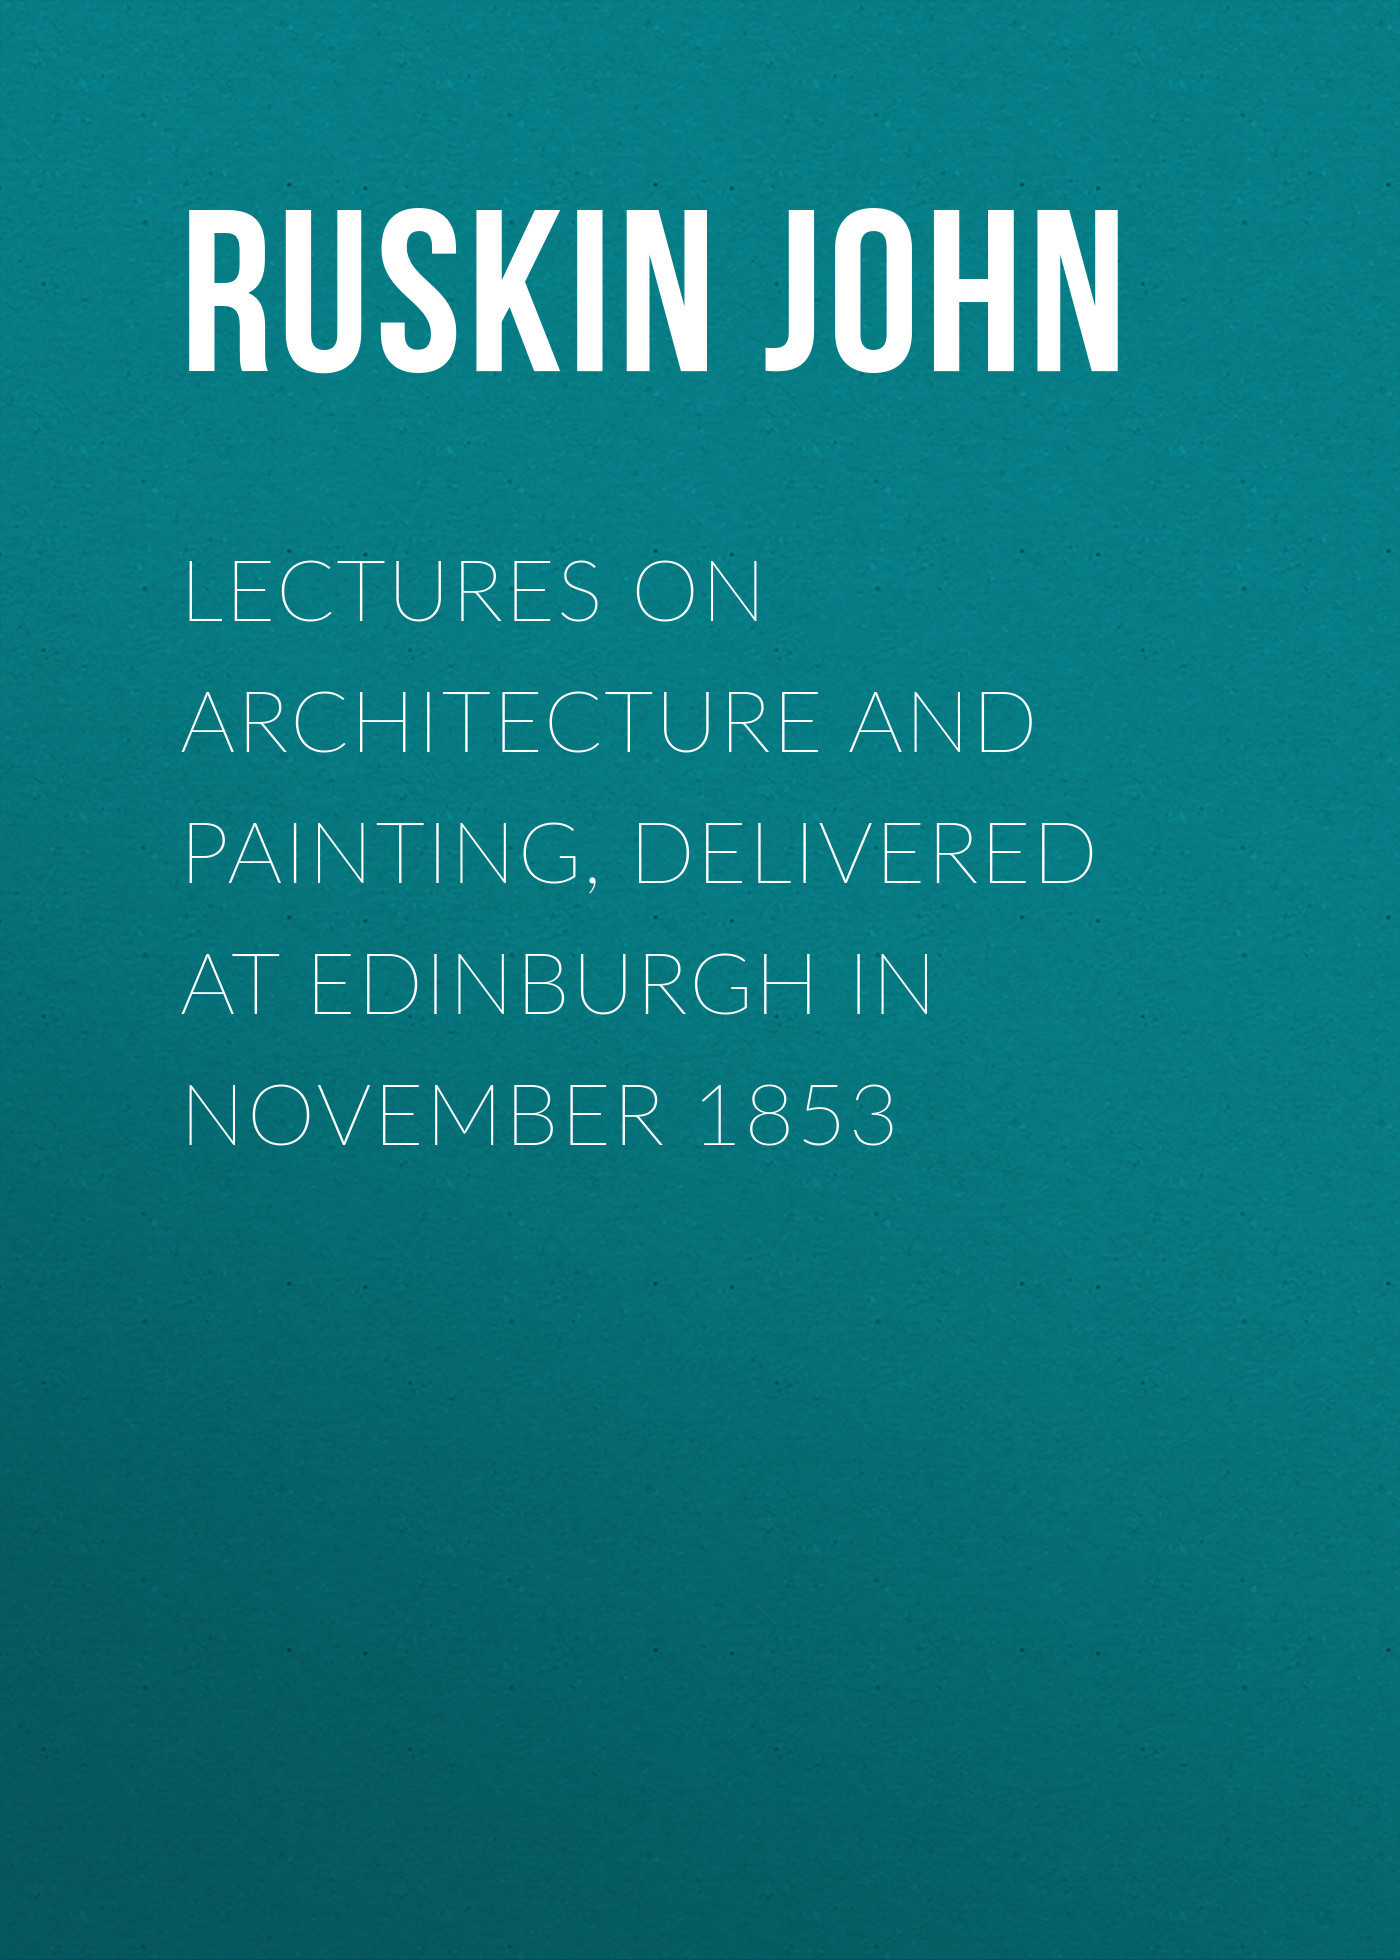 Ruskin John Lectures on Architecture and Painting, Delivered at Edinburgh in November 1853 architecture in use